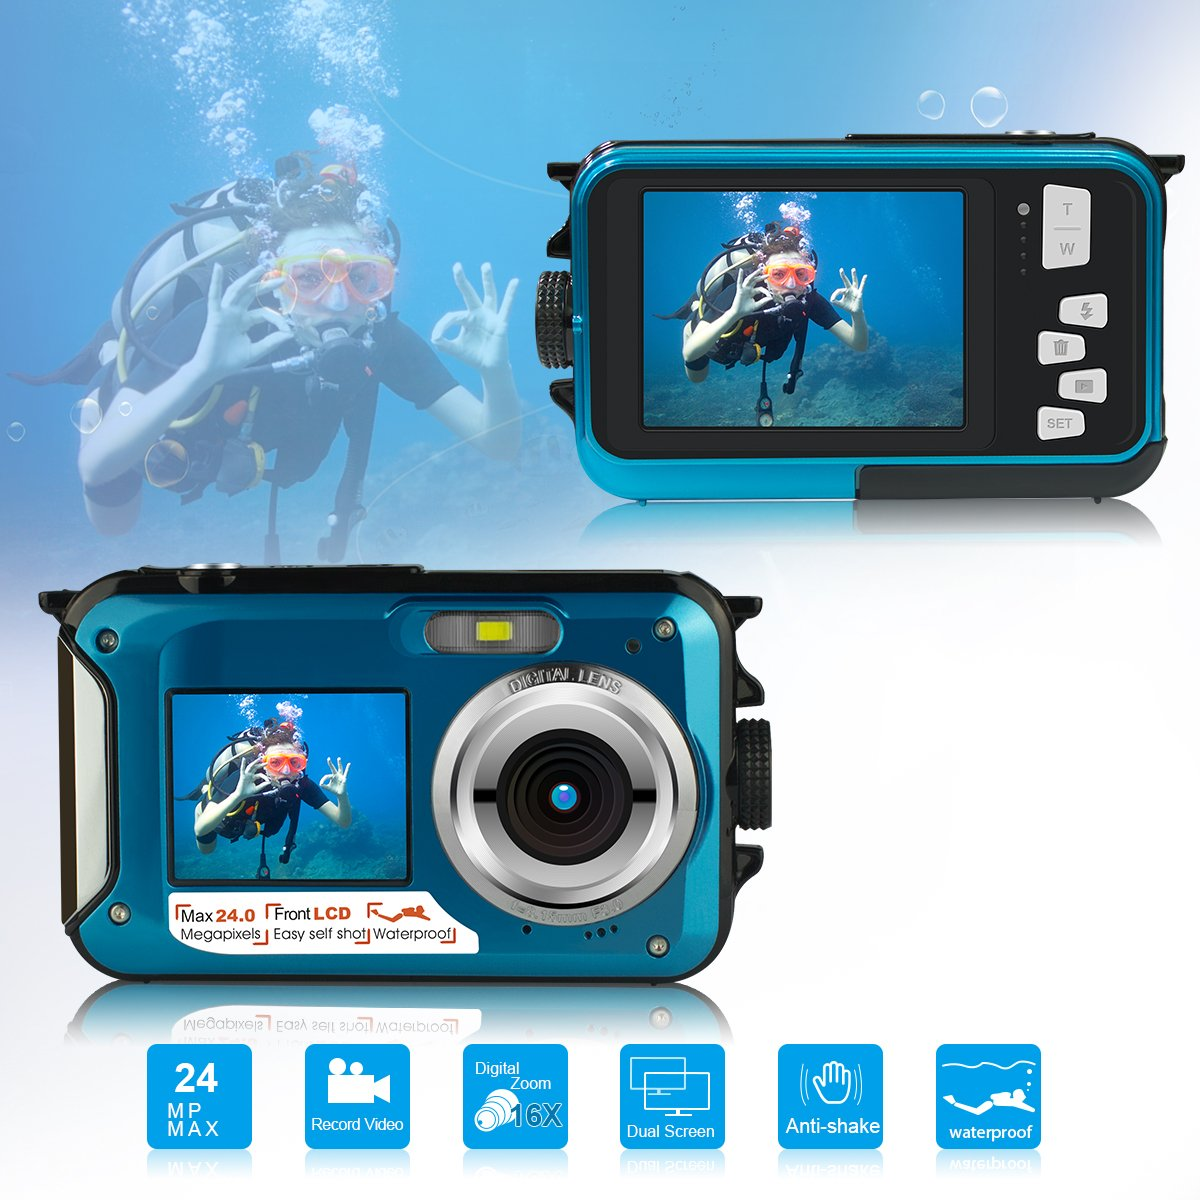 Waterproof Underwater Digital Camera for Snorkeling,Selfie Dual Screen Digital Cameras Waterproof Underwater Video Camera-Holiday,Trip (Blue) by Suntak